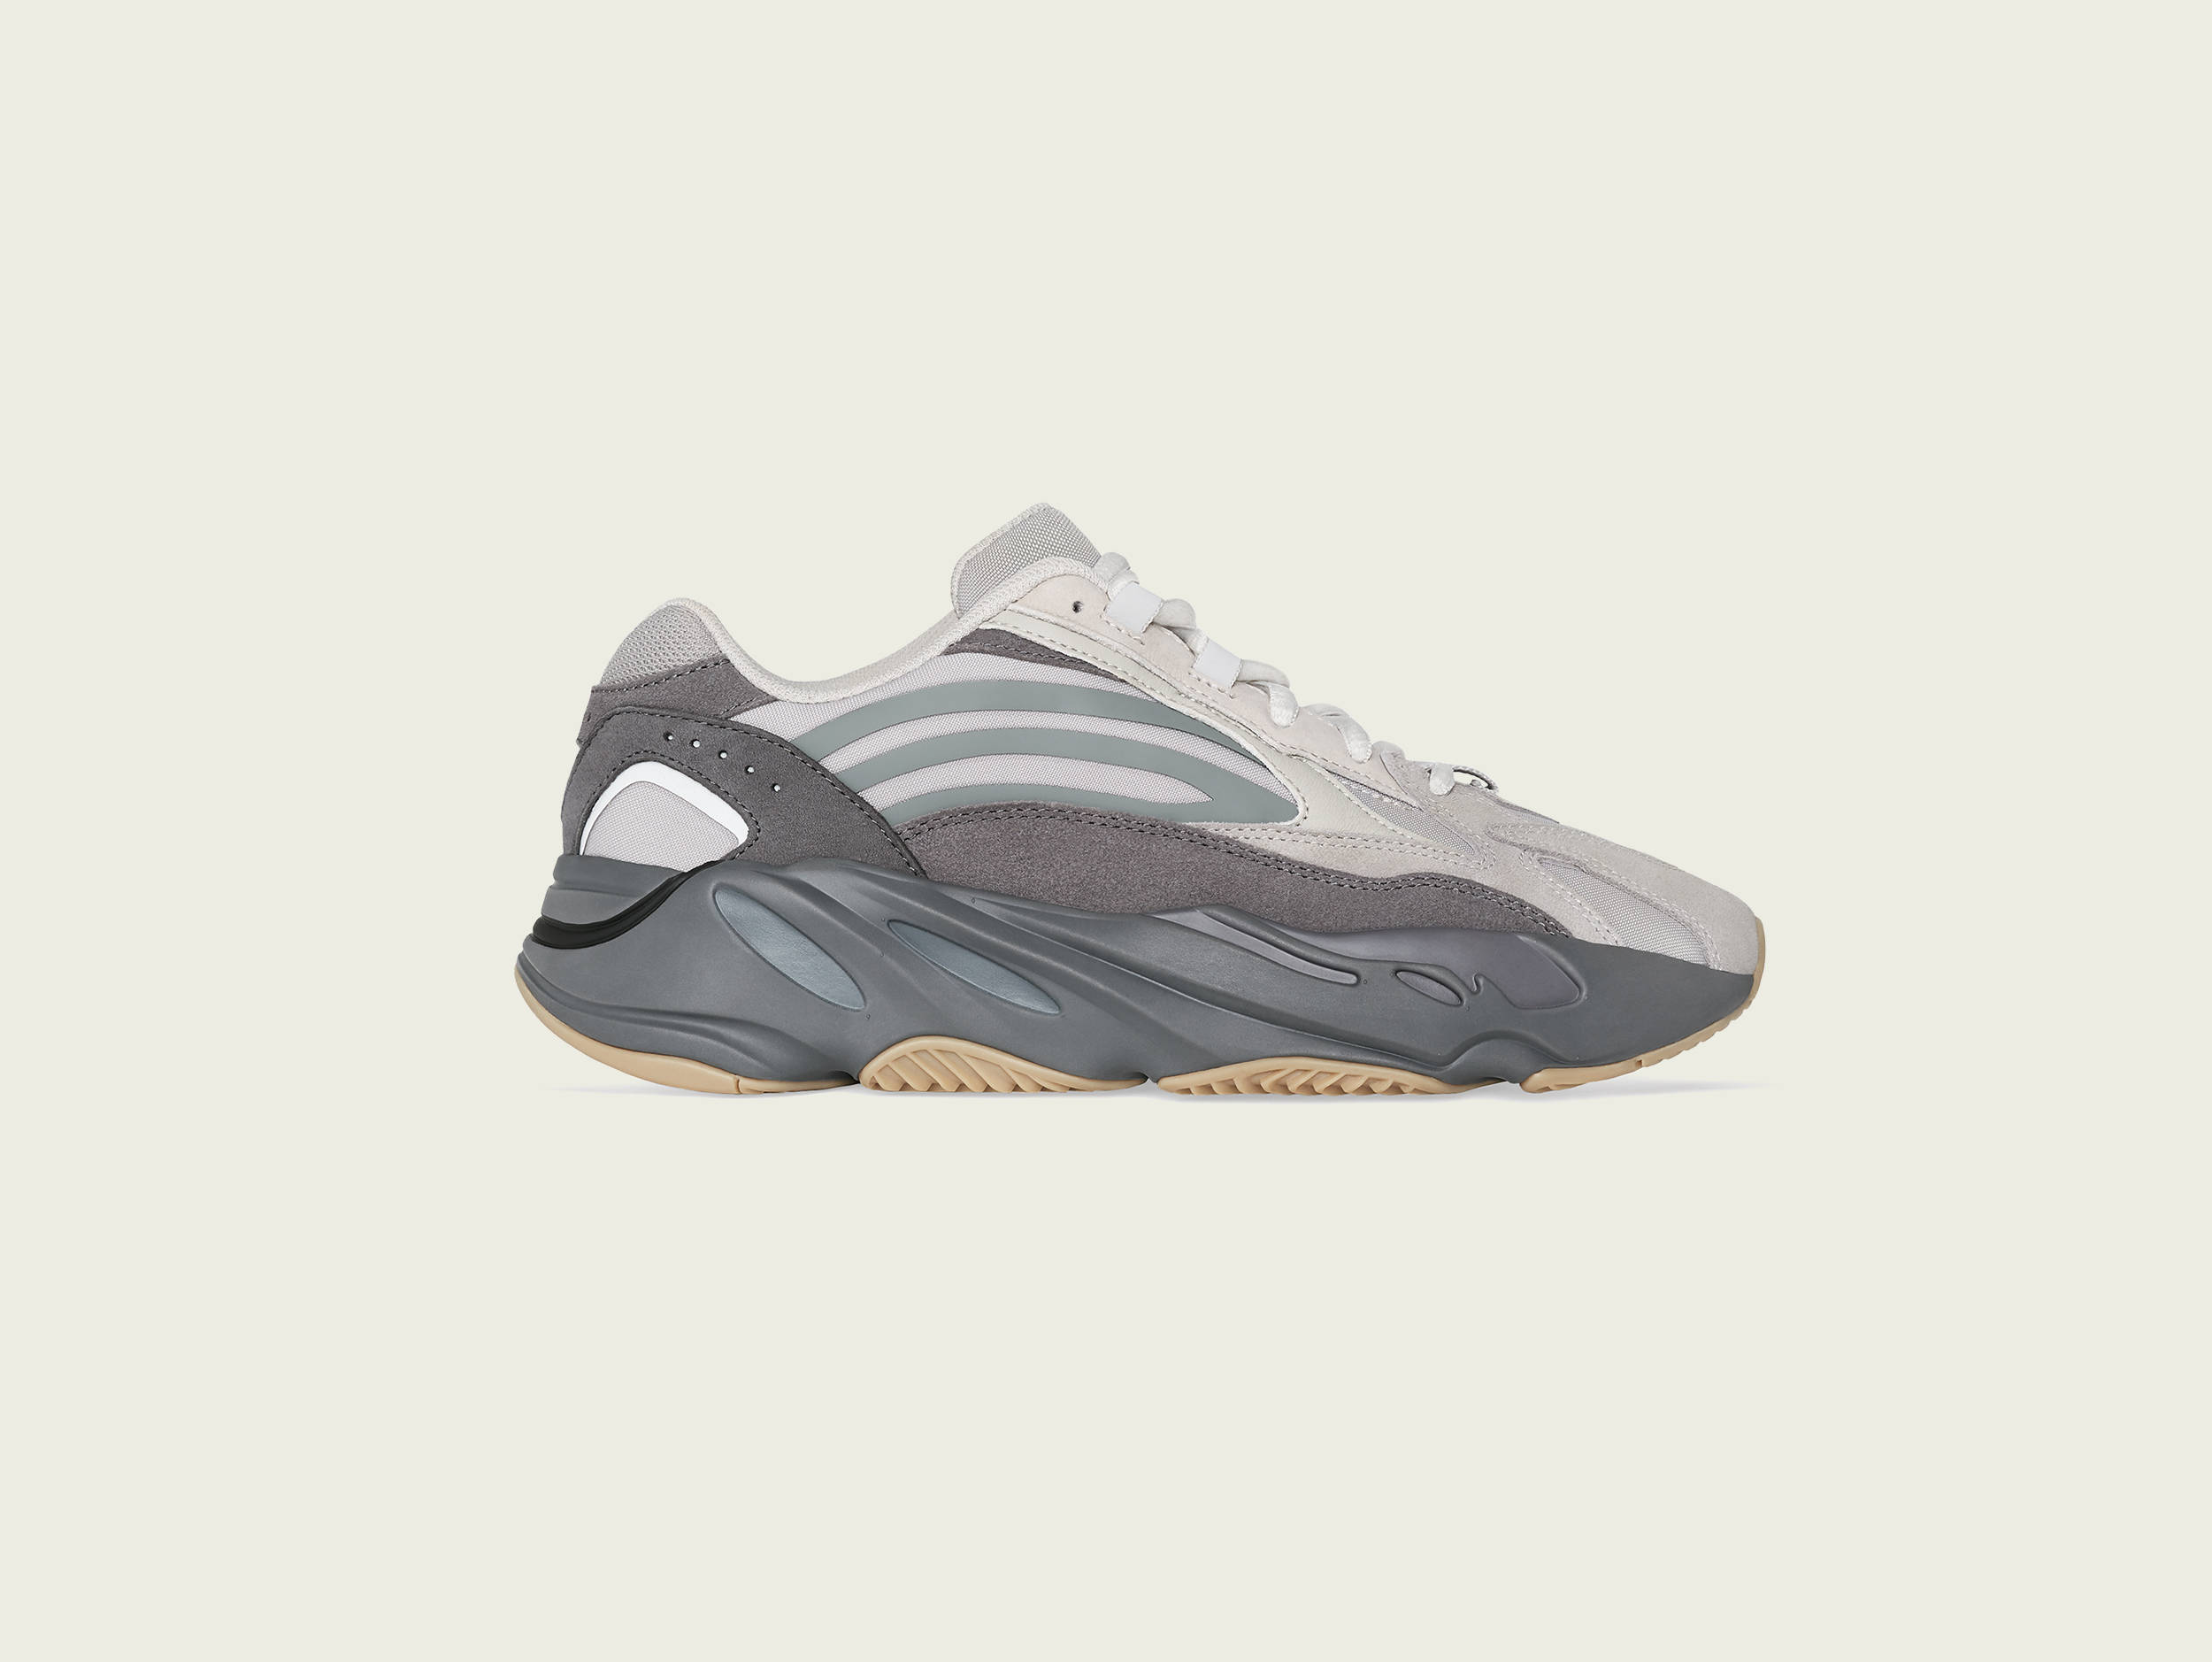 adidas YEEZY BOOST 700 v2 'Tephra' | Now Available